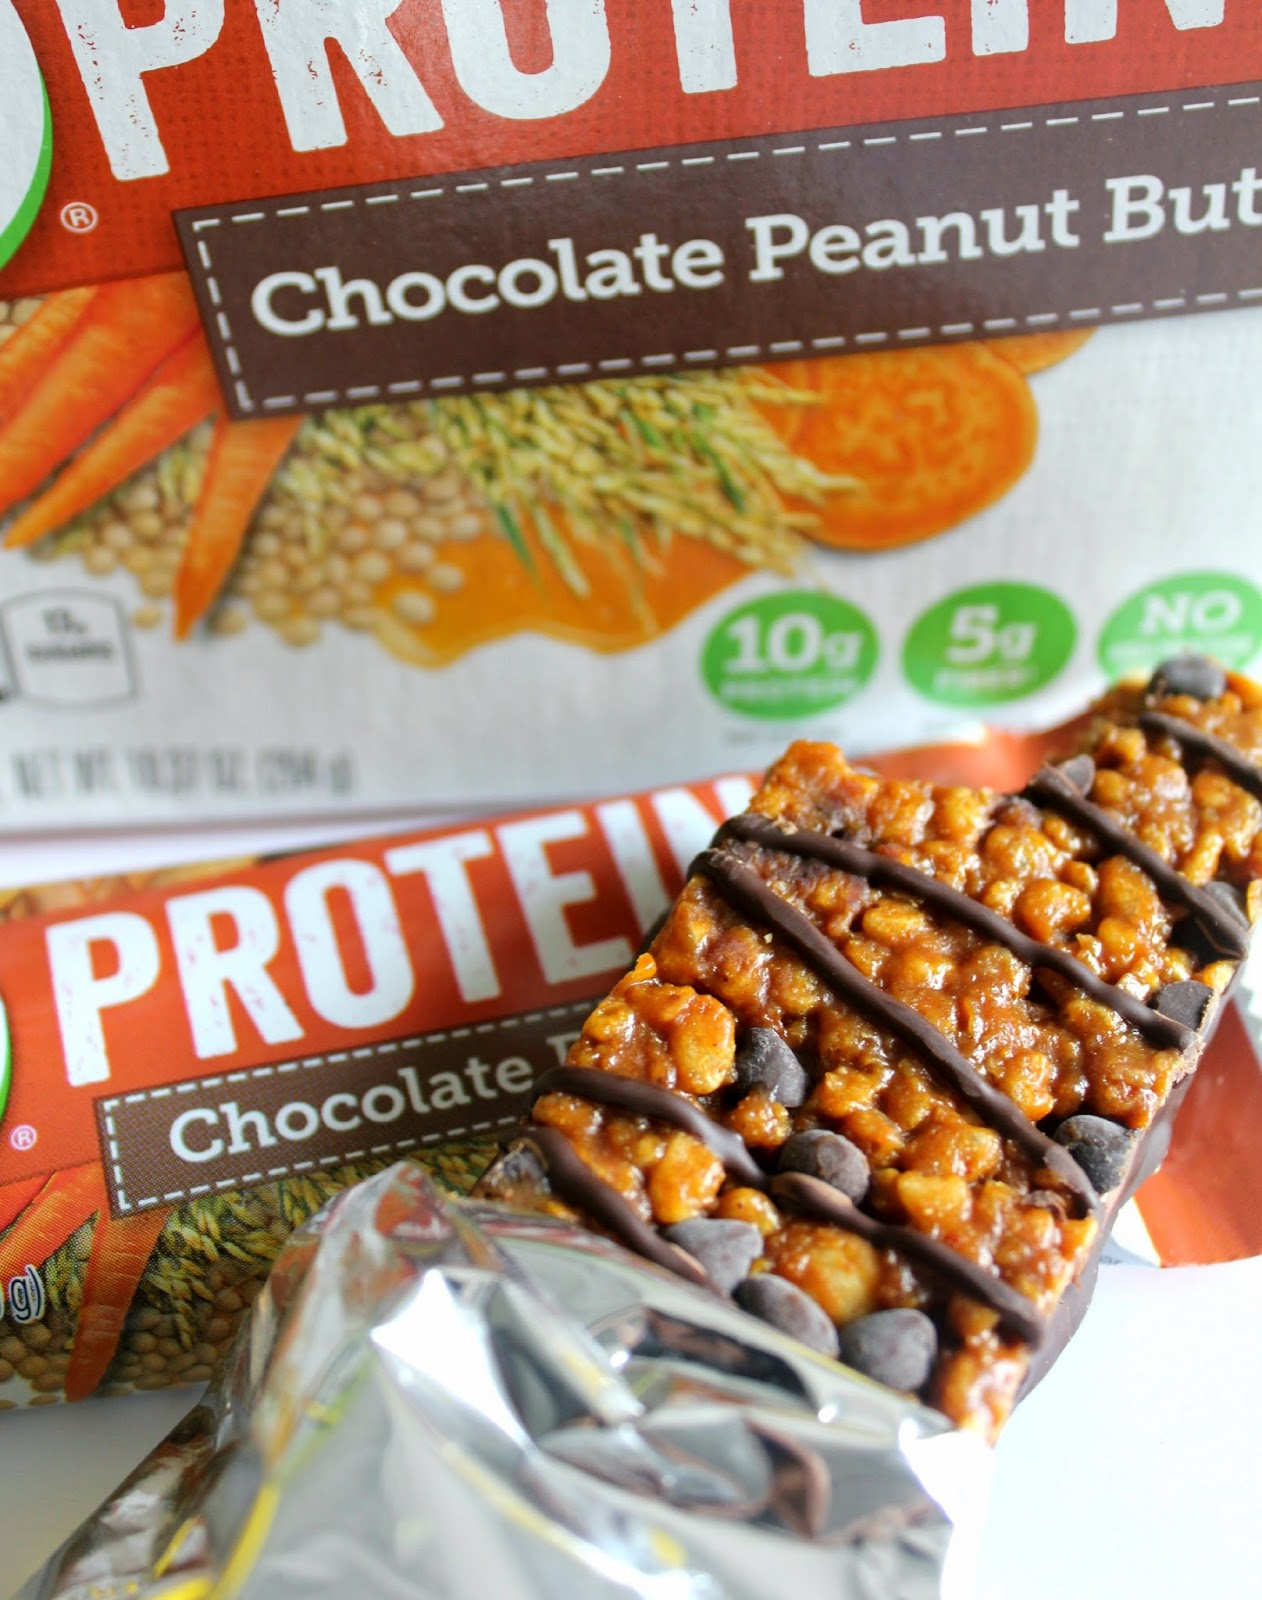 Make good-for-you choices this holiday season with the new Campbell's V8 Protein shakes and bars! #LoveV8Protein #ad